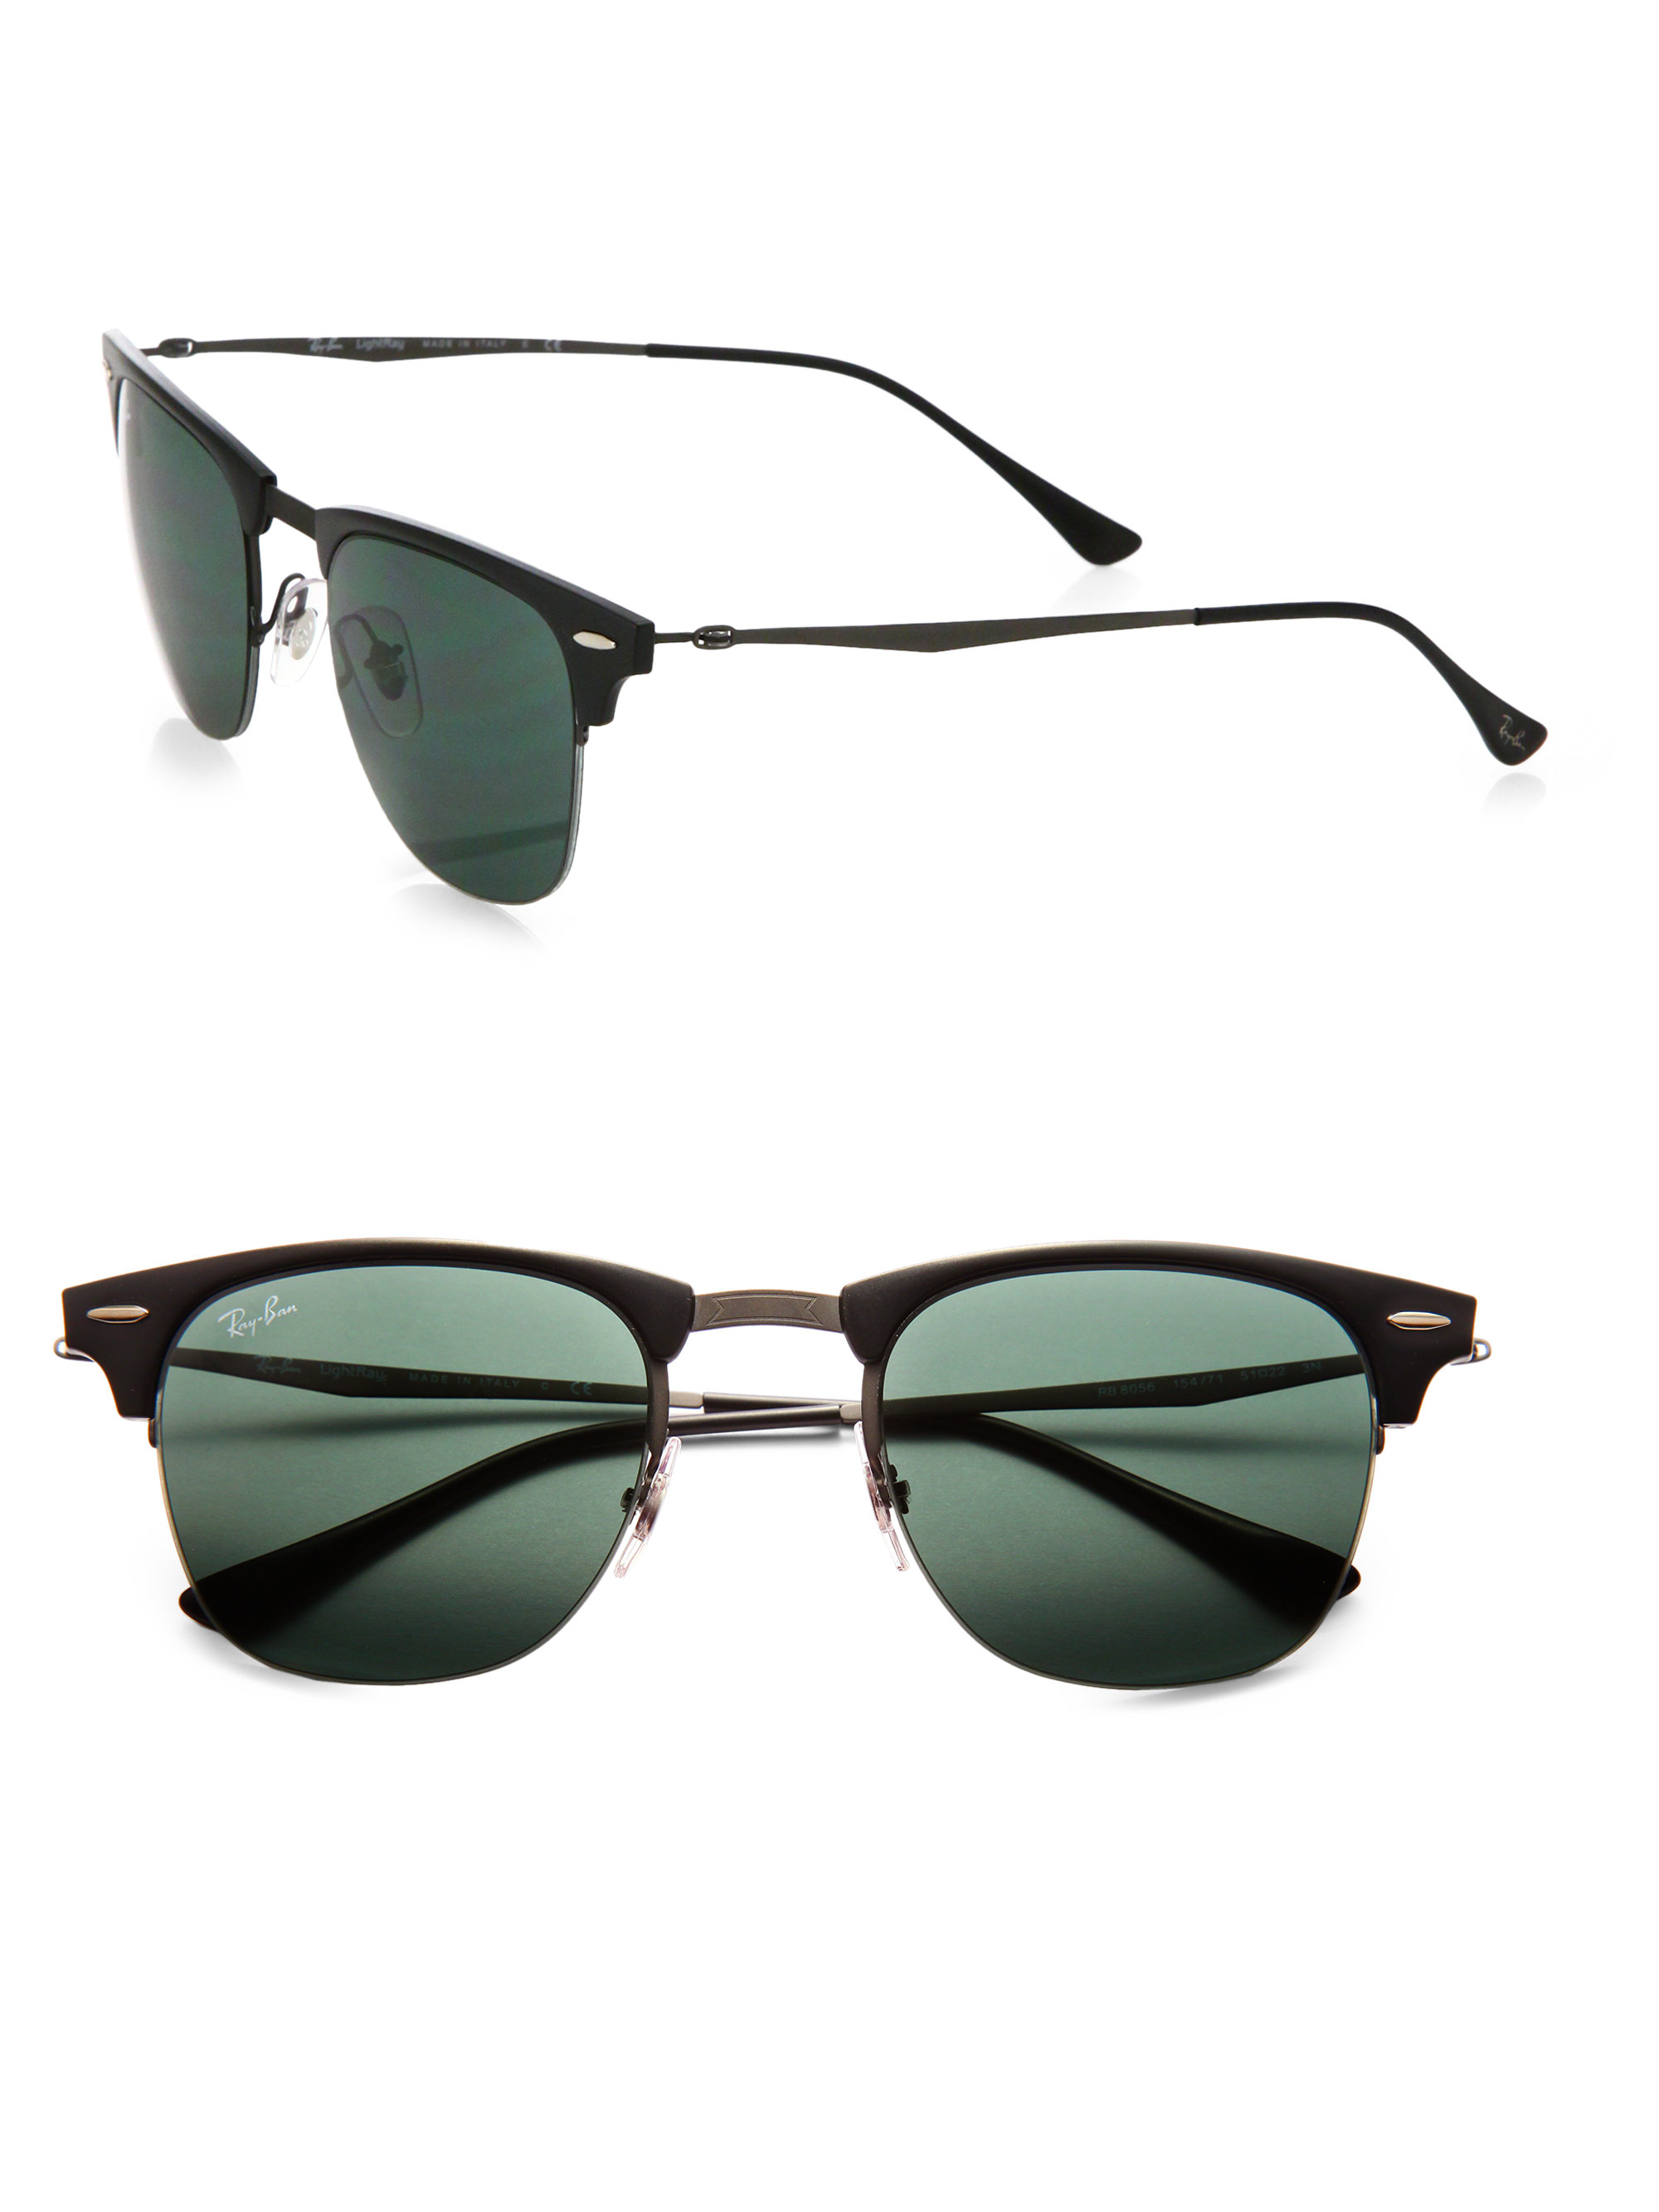 b7231b8850 Lyst - Ray-Ban Classic Clubmaster 51mm Sunglasses in Green for Men